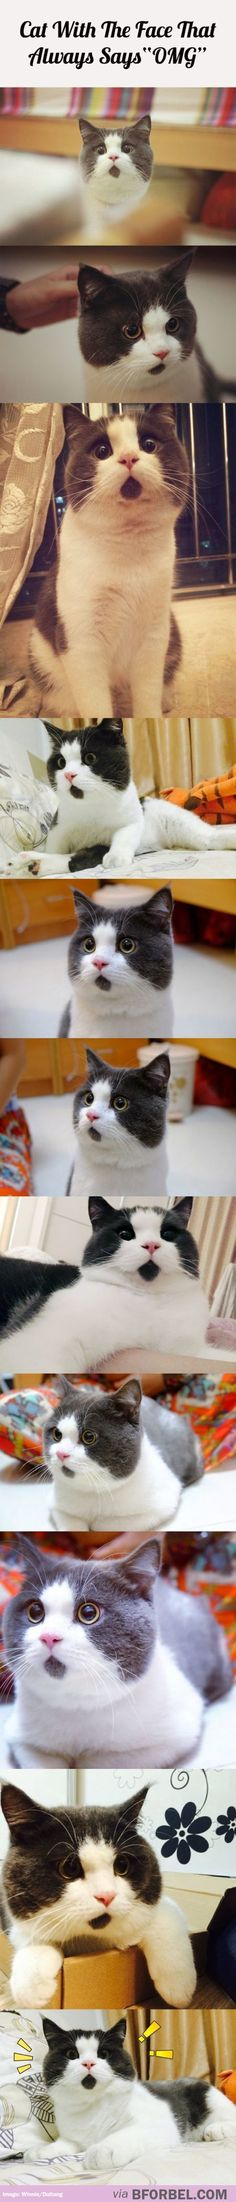 """Meet The Cat With The Perpetual """"OMG"""" Face…"""